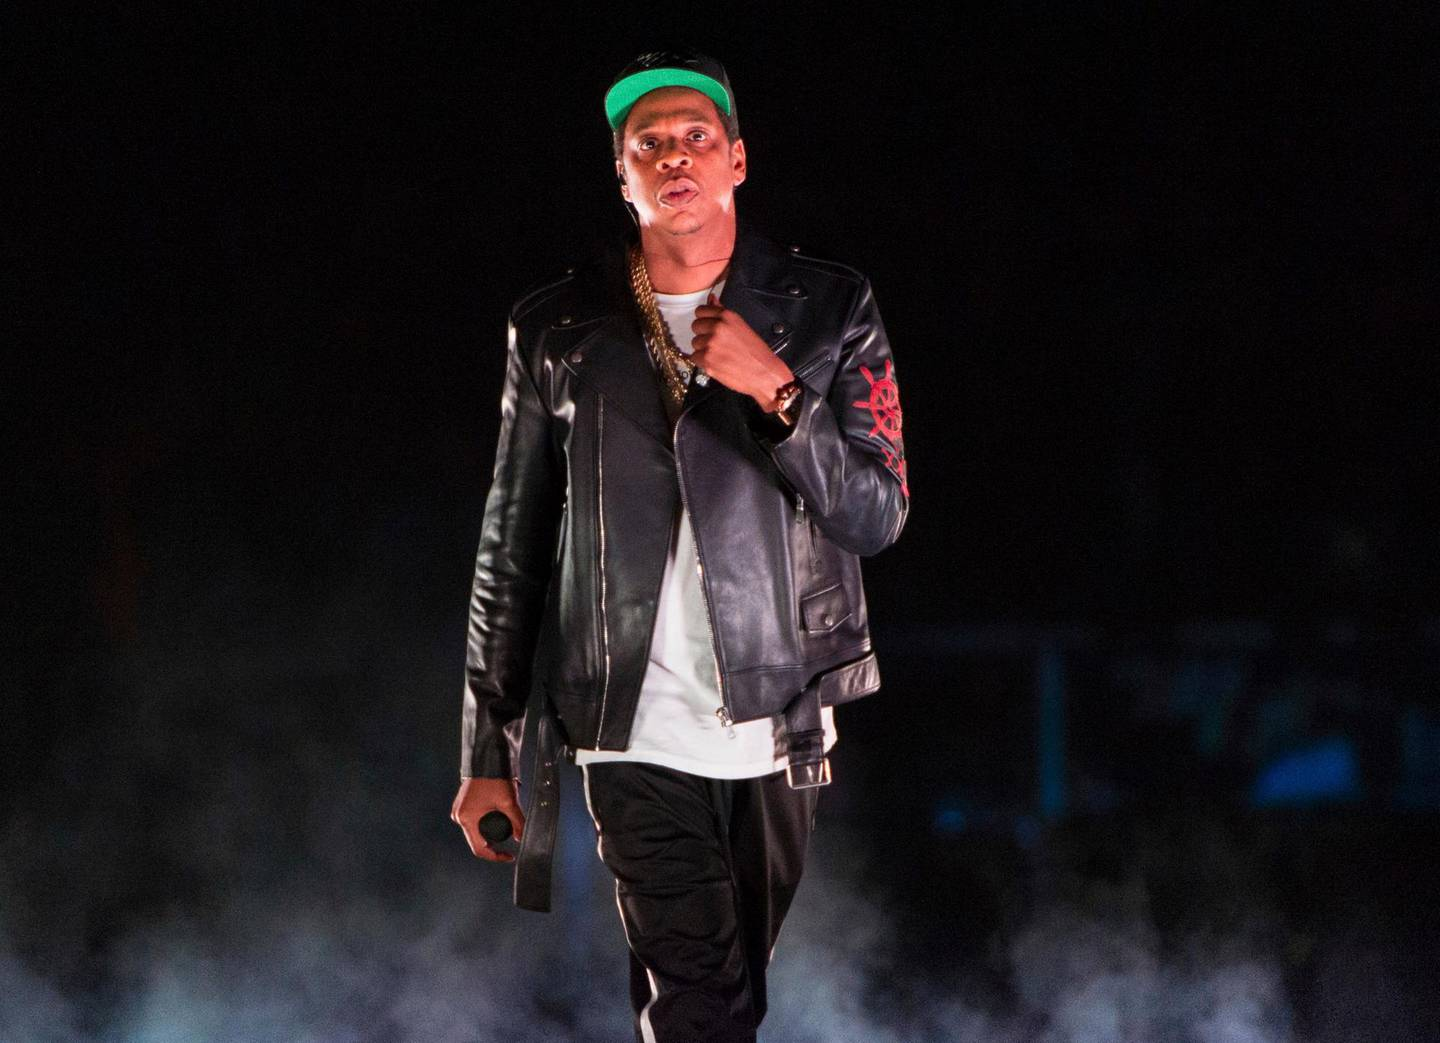 FILE - In this Nov. 26, 2017, file photo, Jay-Z performs on the 4:44 Tour at Barclays Center in New York. Woodstock co-founder Michael Lang says if he could go back in time and do things differently regarding the shambolic 50th anniversary concerts, he would. The last six months have been an extremely wild ride for Lang as he tried to make Woodstock 50 work. The first plan, to have an all-star concert with the likes of Jay-Z and more in Watkins Glen, N.Y., was scuttled after the venue pulled out. (Photo by Scott Roth/Invision/AP, File)